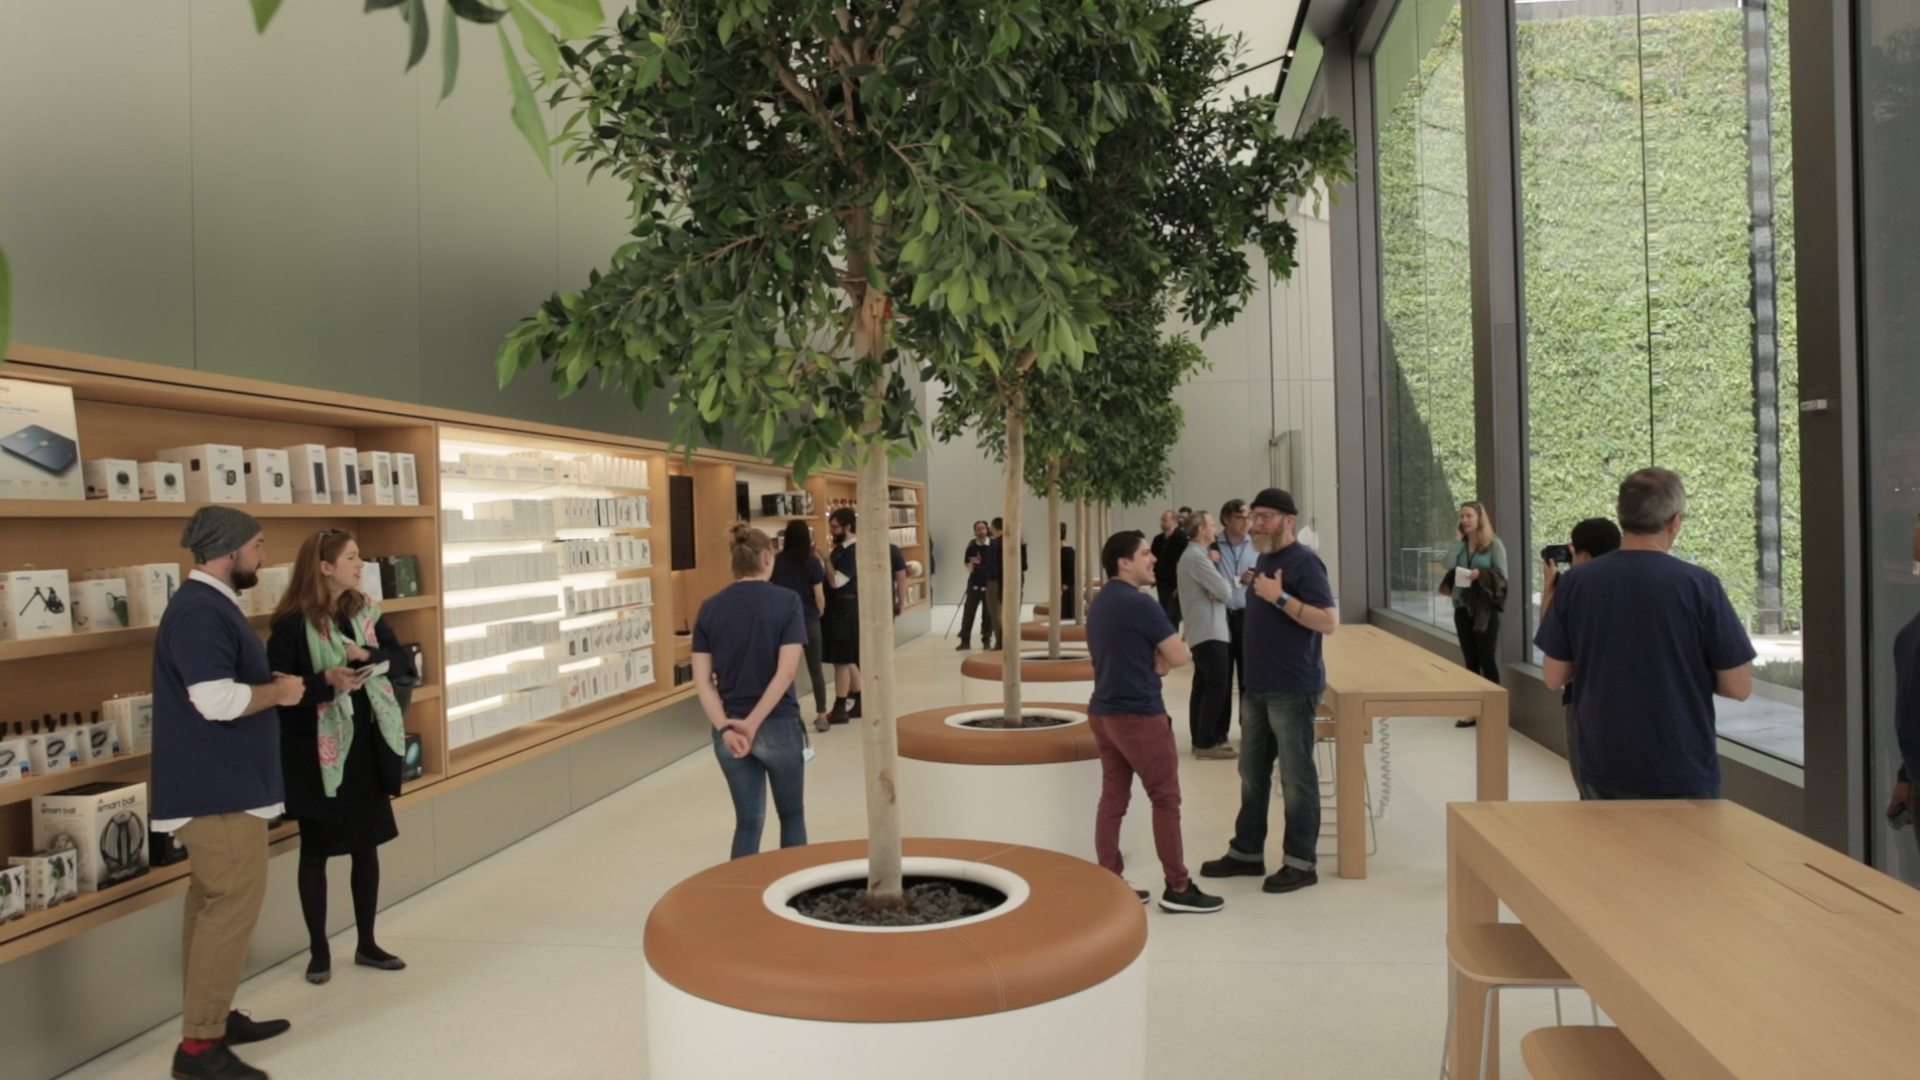 Video: Take a tour of Apple's redesigned store